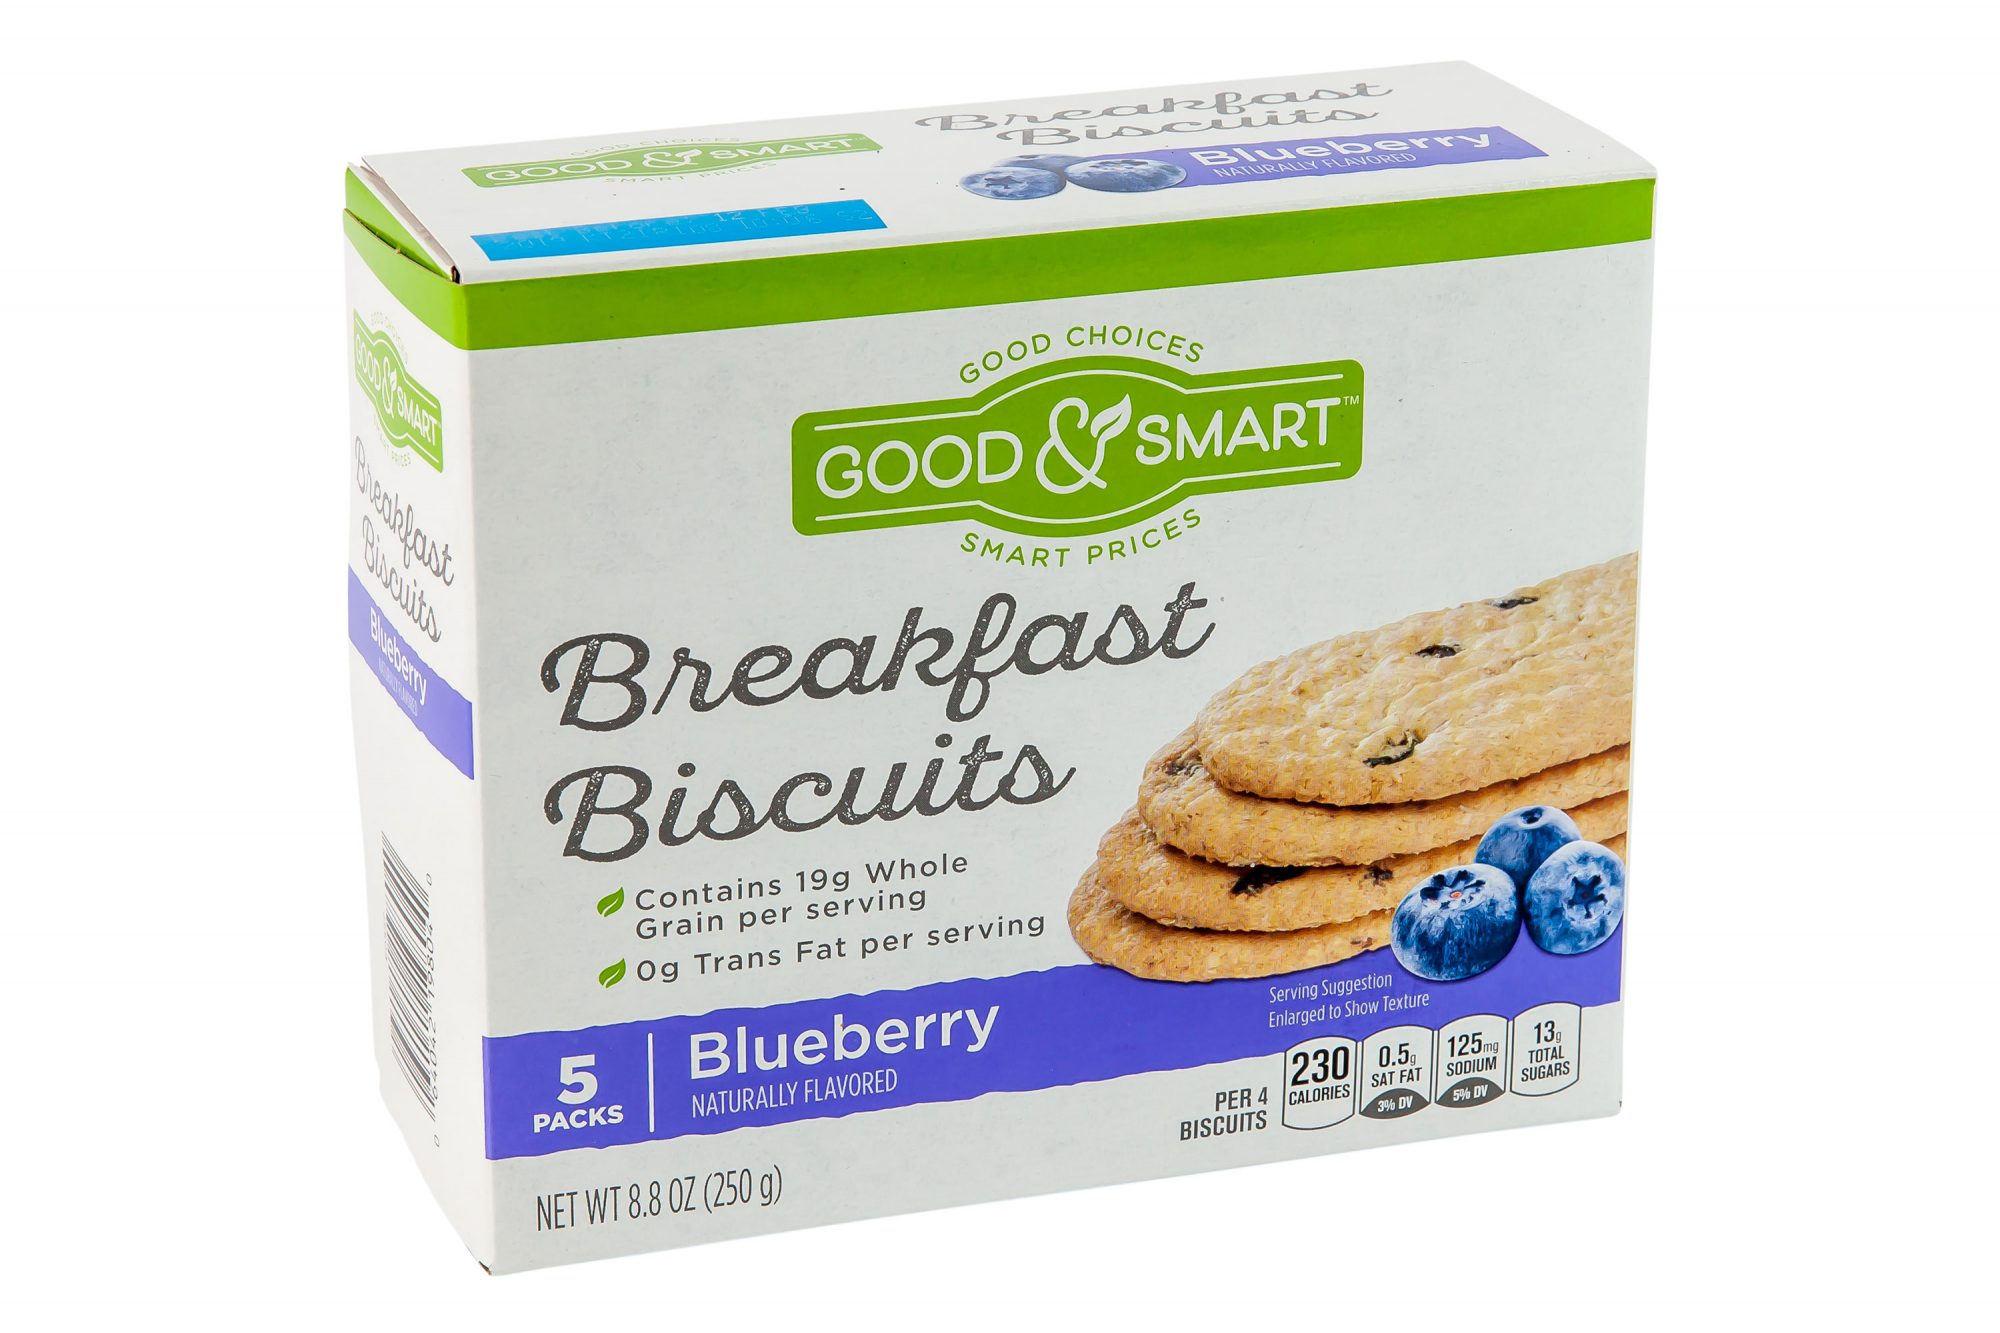 GS_BreakfastBiscuits_Blueberry_5Pack_R